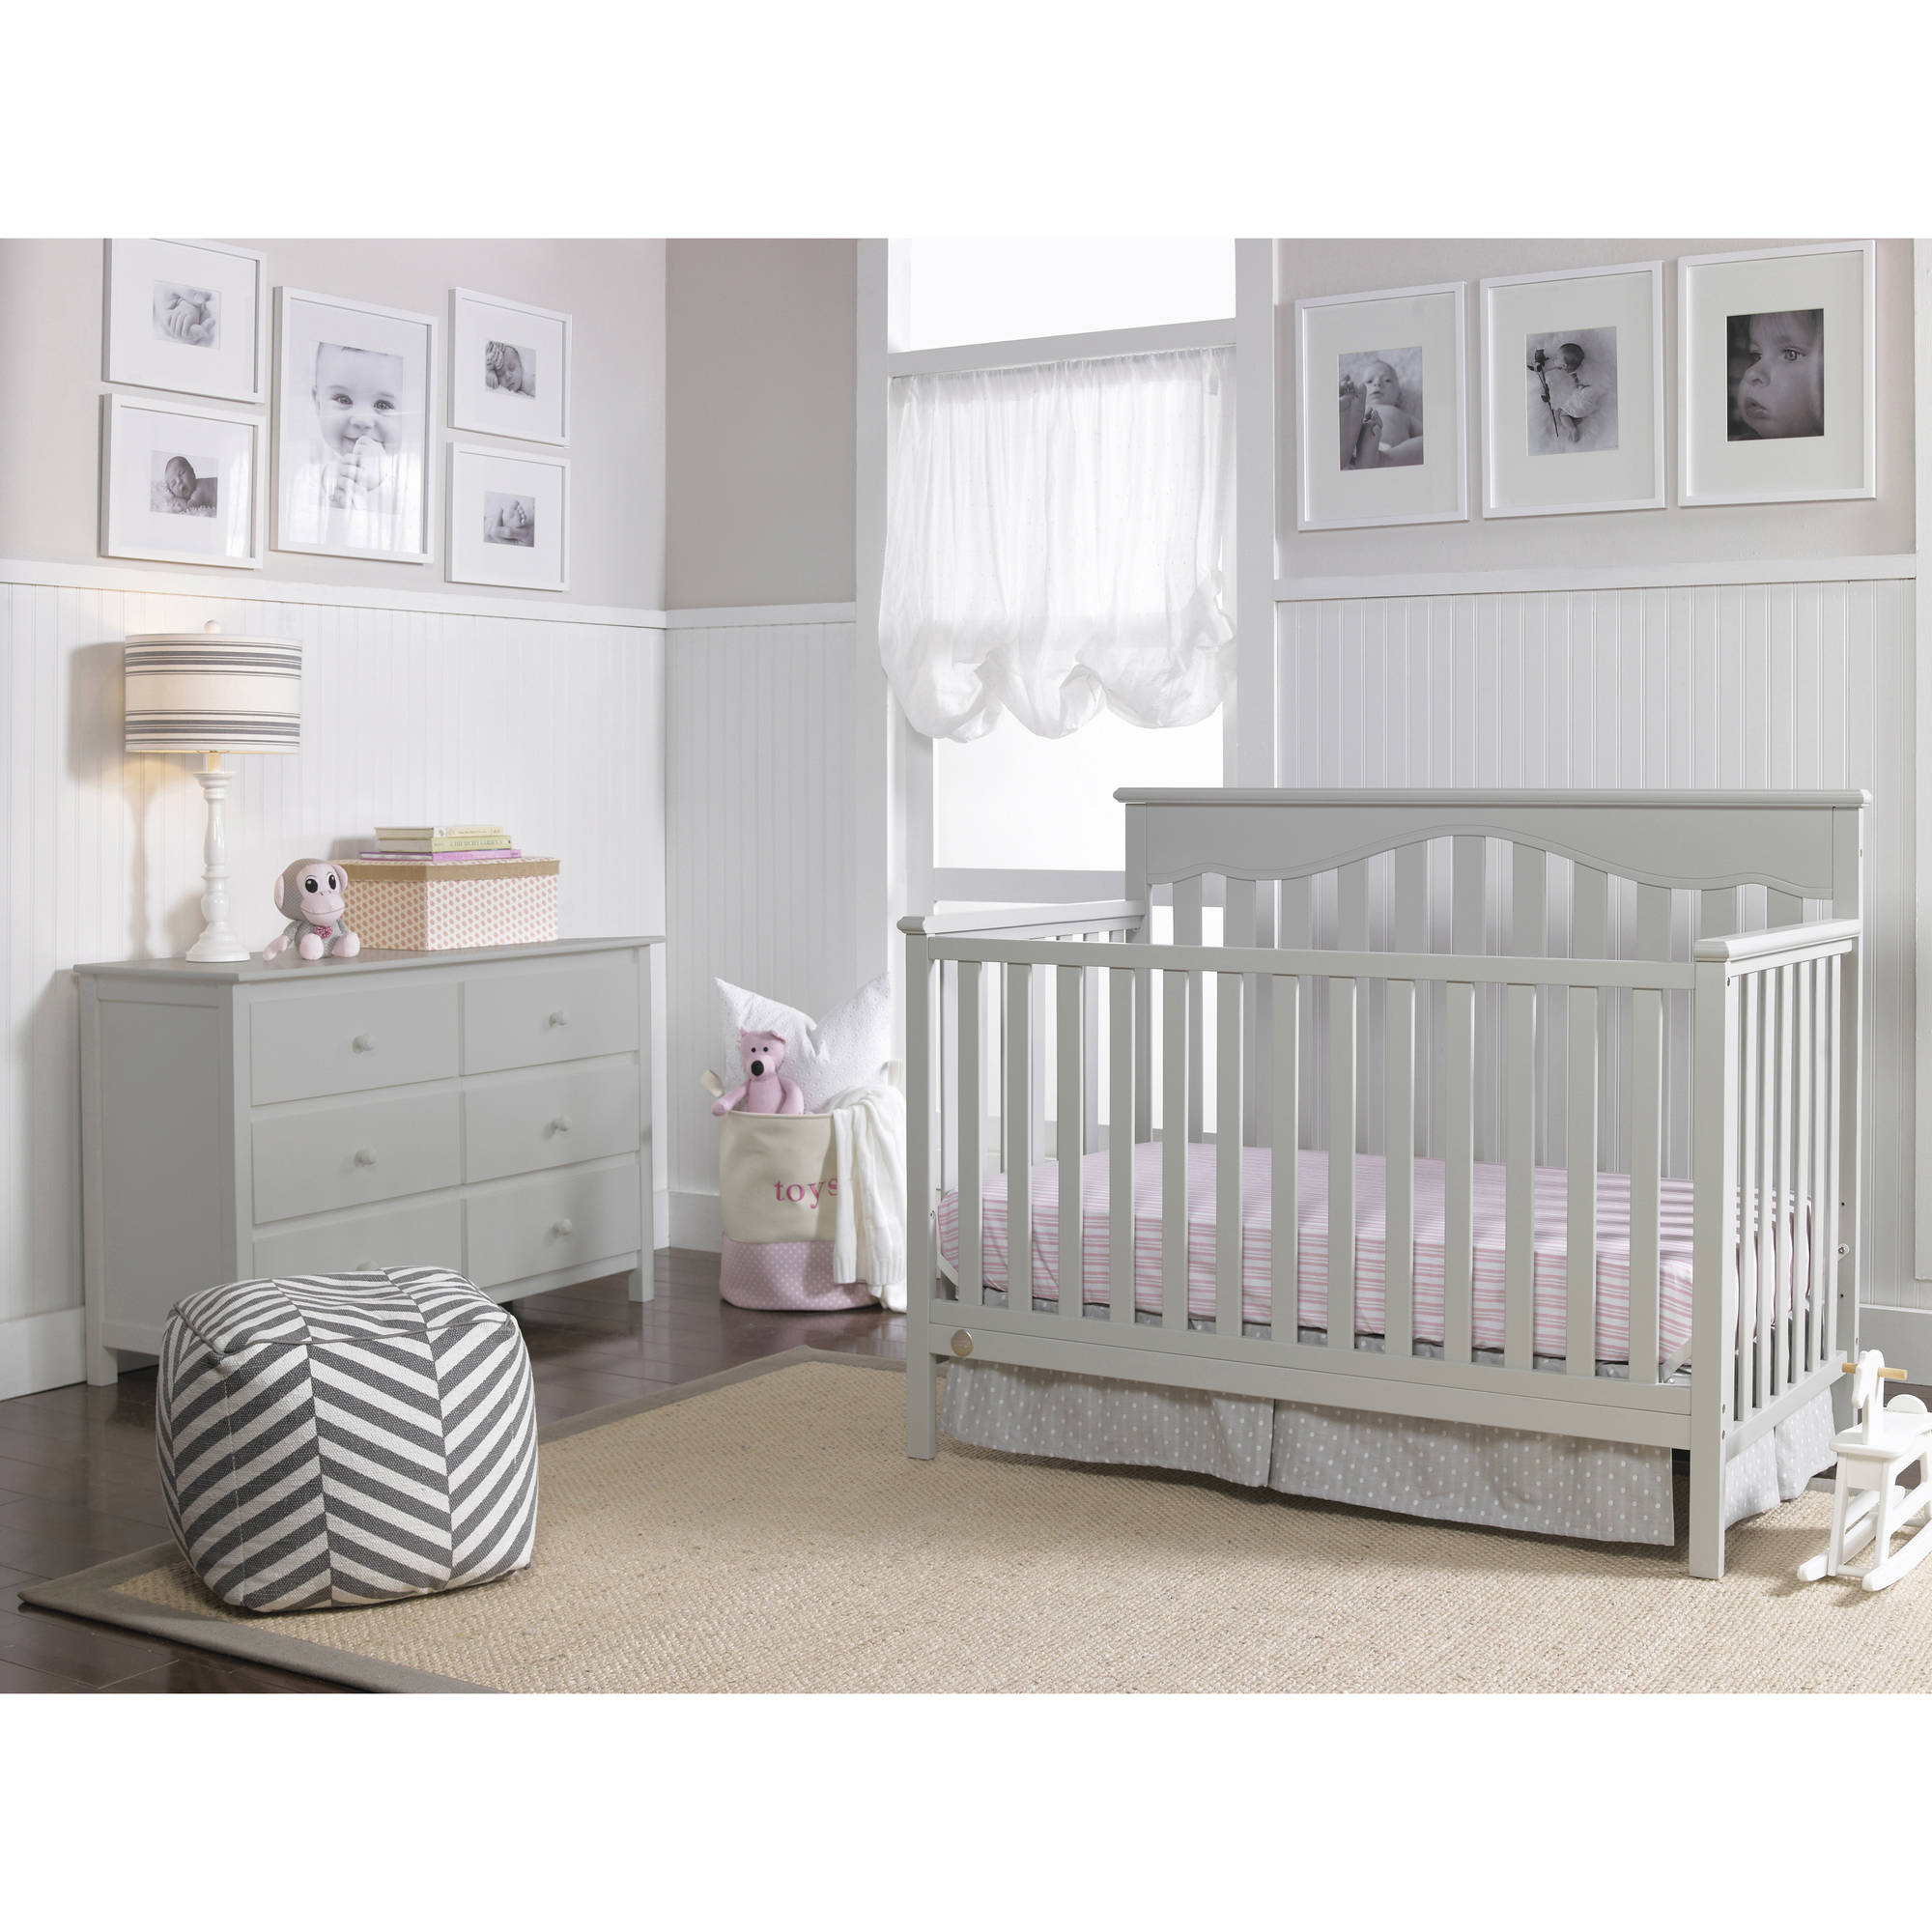 fisherprice caitlin in convertible crib misty gray  walmartcom -